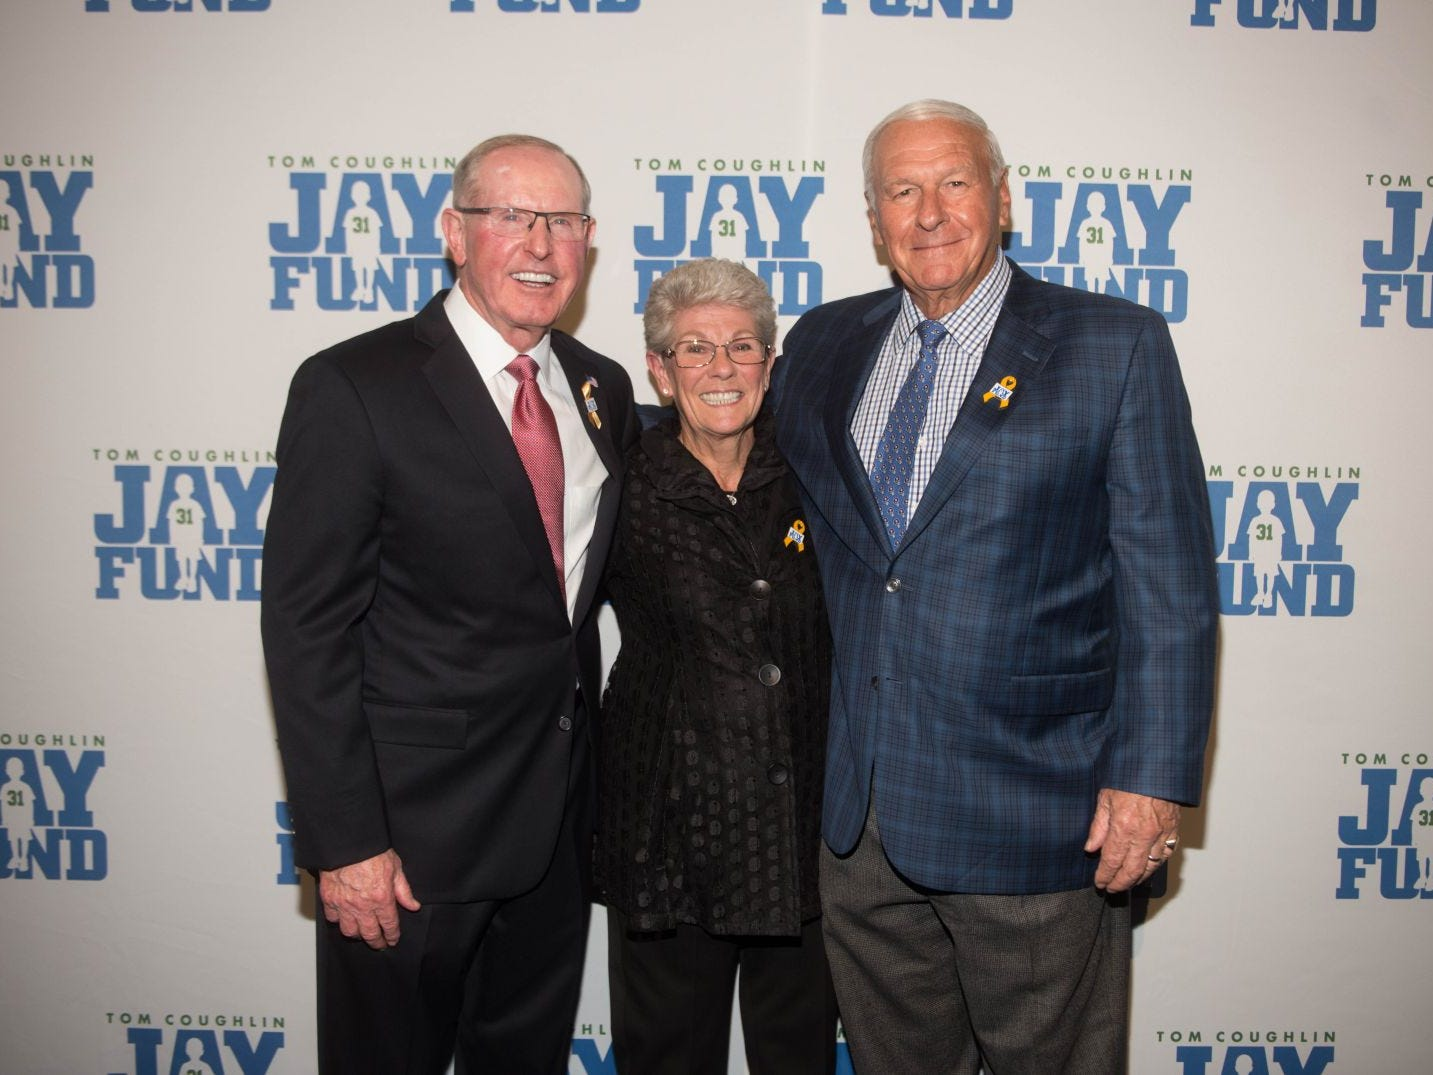 Tom Coughlin,  Judy Coughlin and Chuck Mercein. The 14th annual Jay Fund Champions for Children Gala was held at Cipriani 42nd Street. 09/21/2018